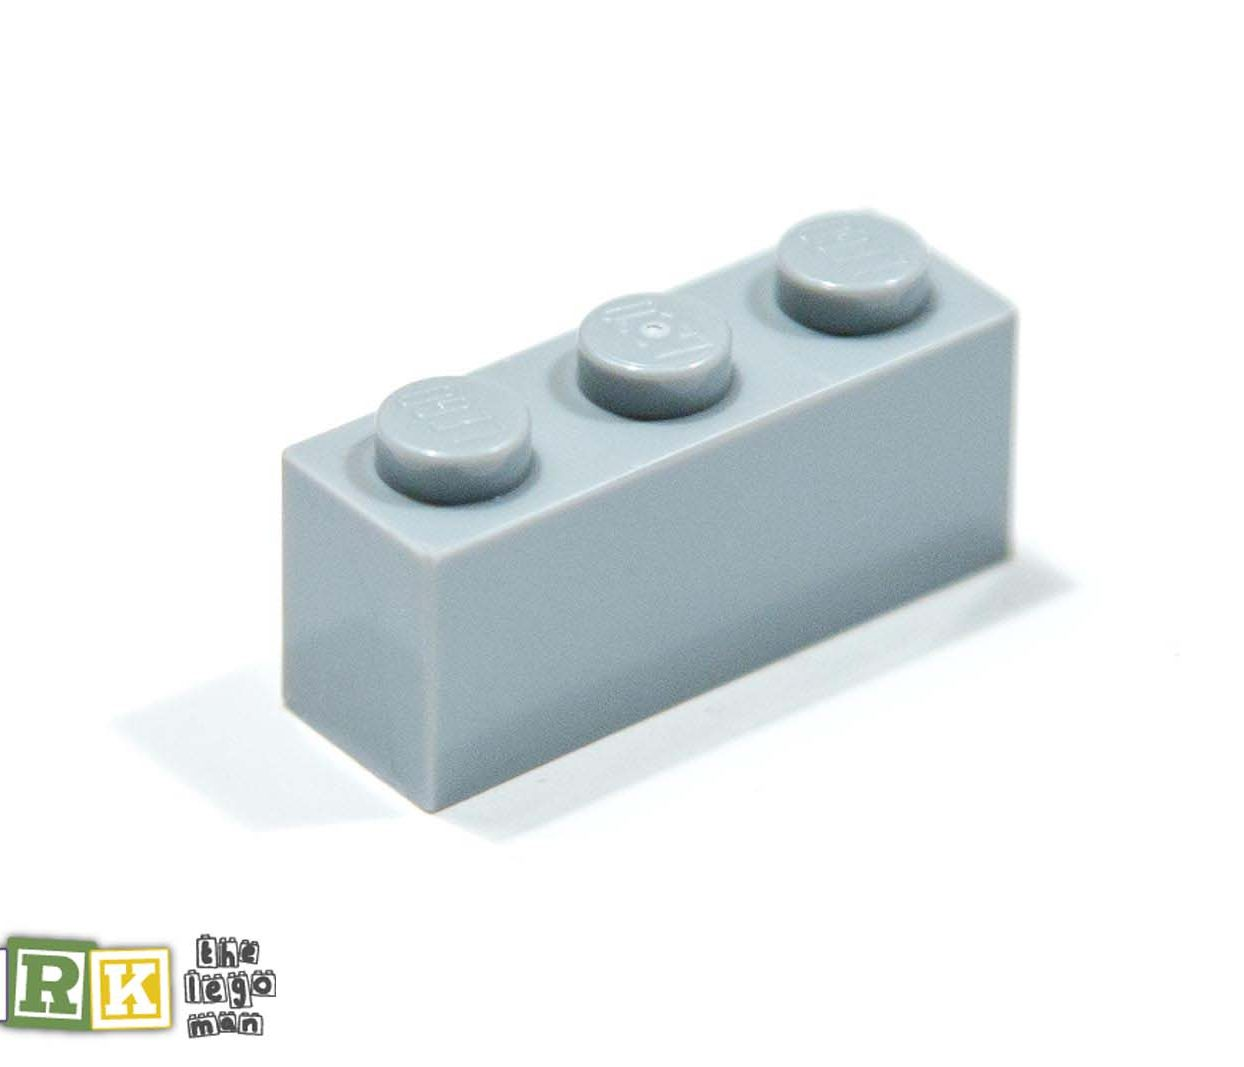 Lego 4211428 3622 1x Light Blueish Grey Md Stone Medium Standard Grey 1x3 Brick